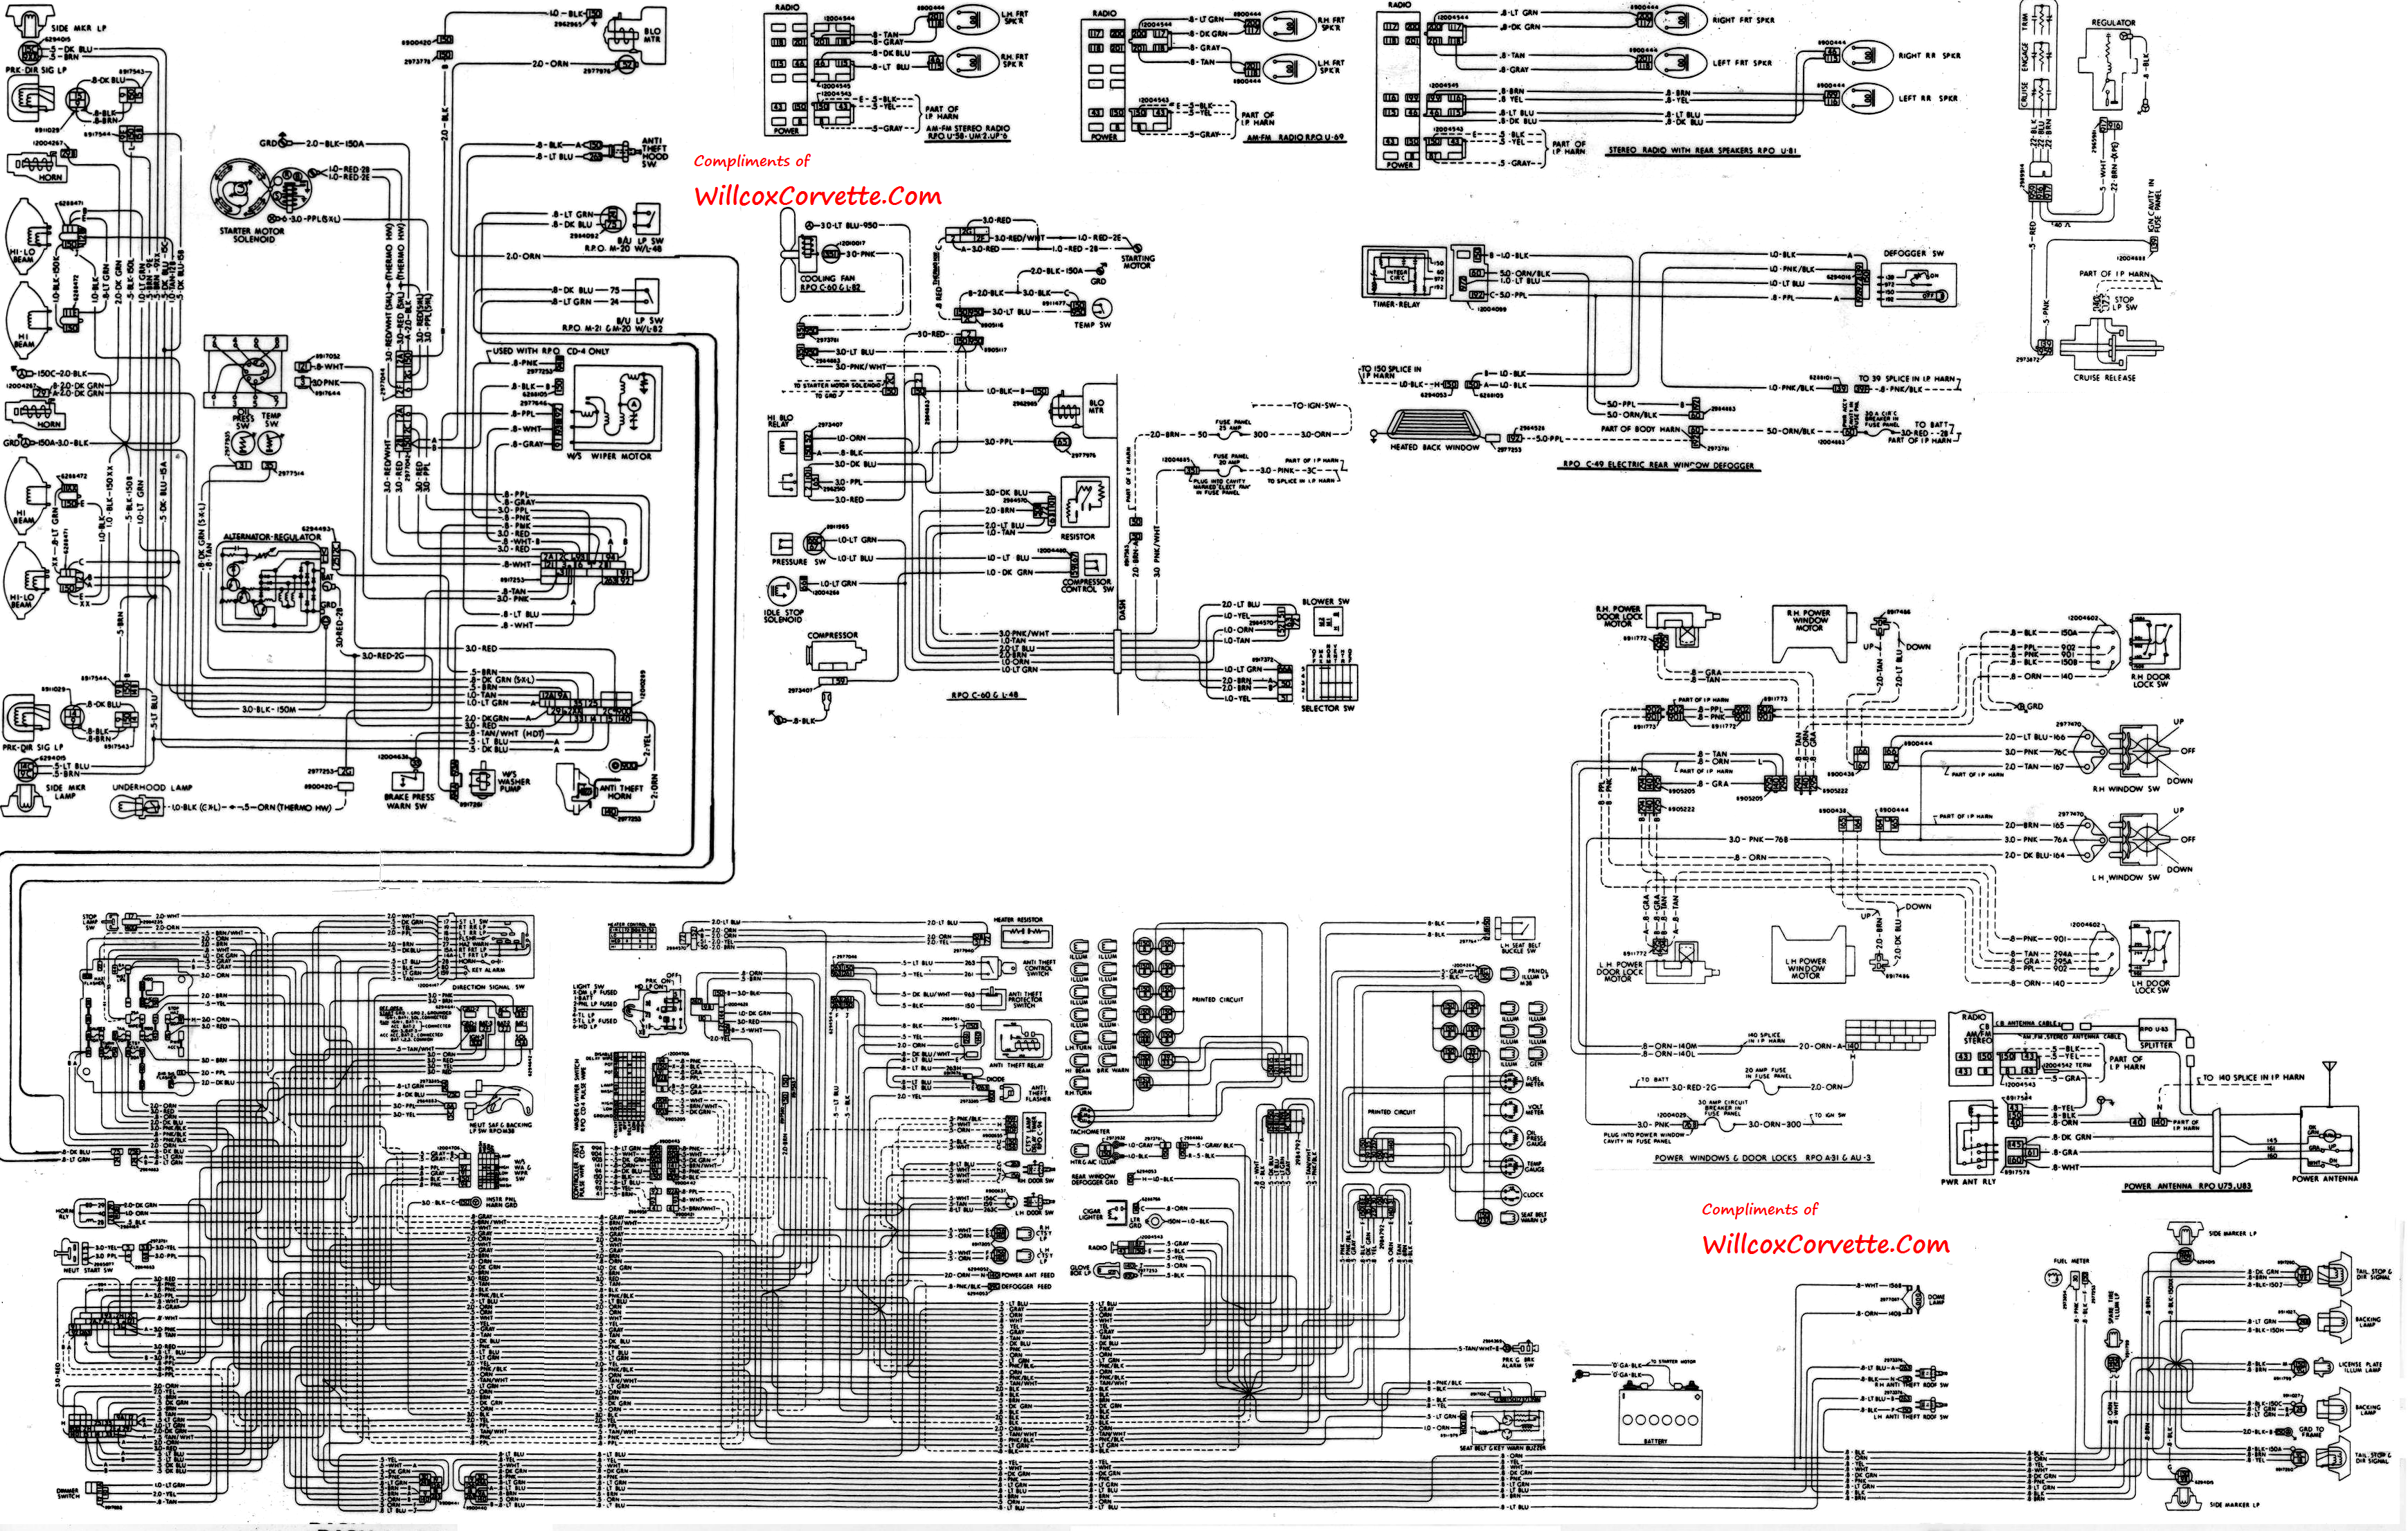 1979 wire diagram 1978 corvette wiring diagram pdf 1980 el camino wiring diagram 1998 corvette wiring diagram at gsmportal.co